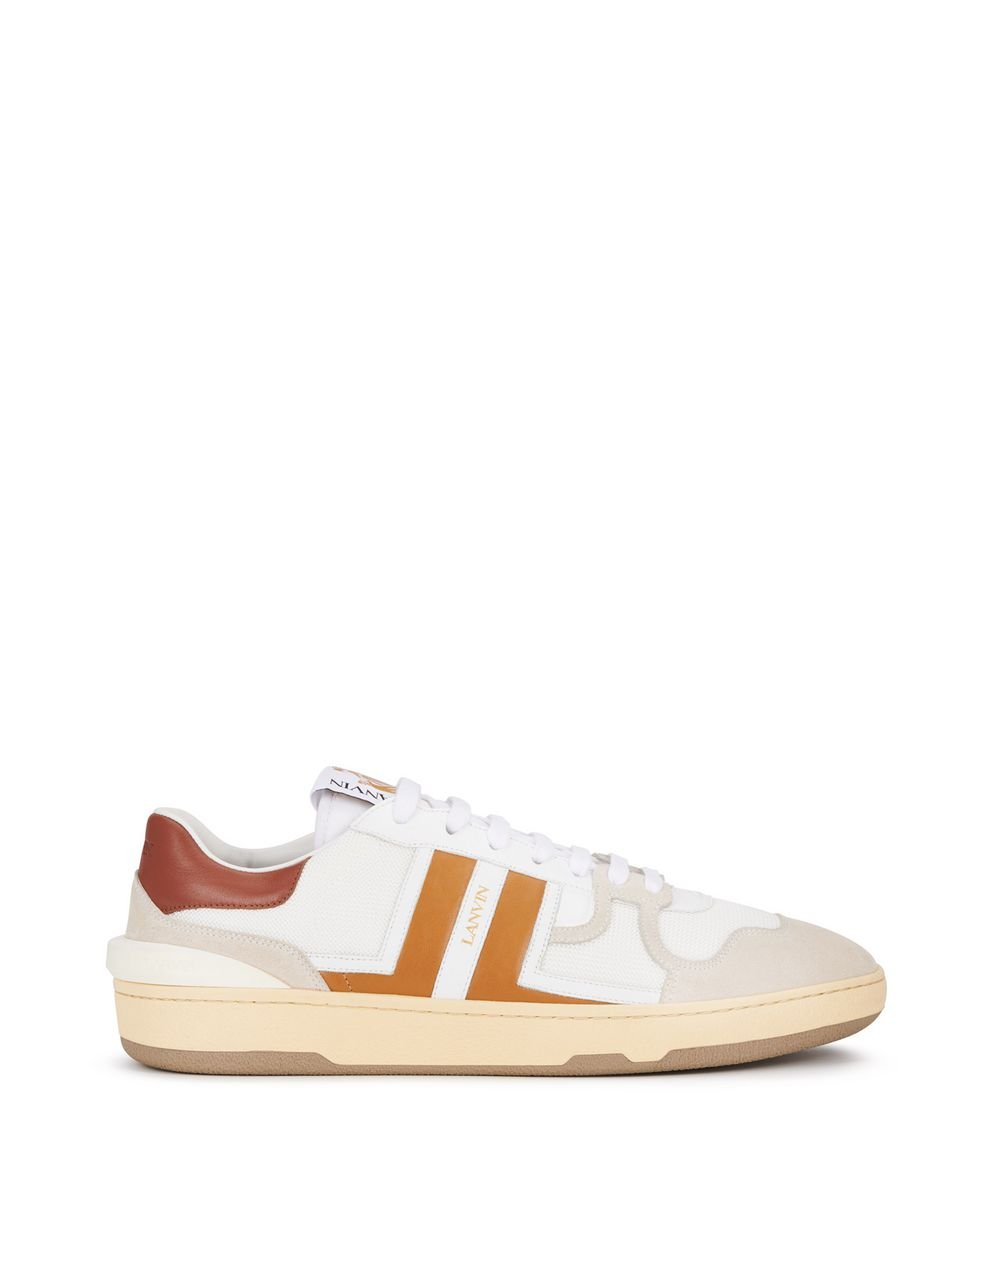 LEATHER CLAY LOW-TOP TRAINERS - Lanvin